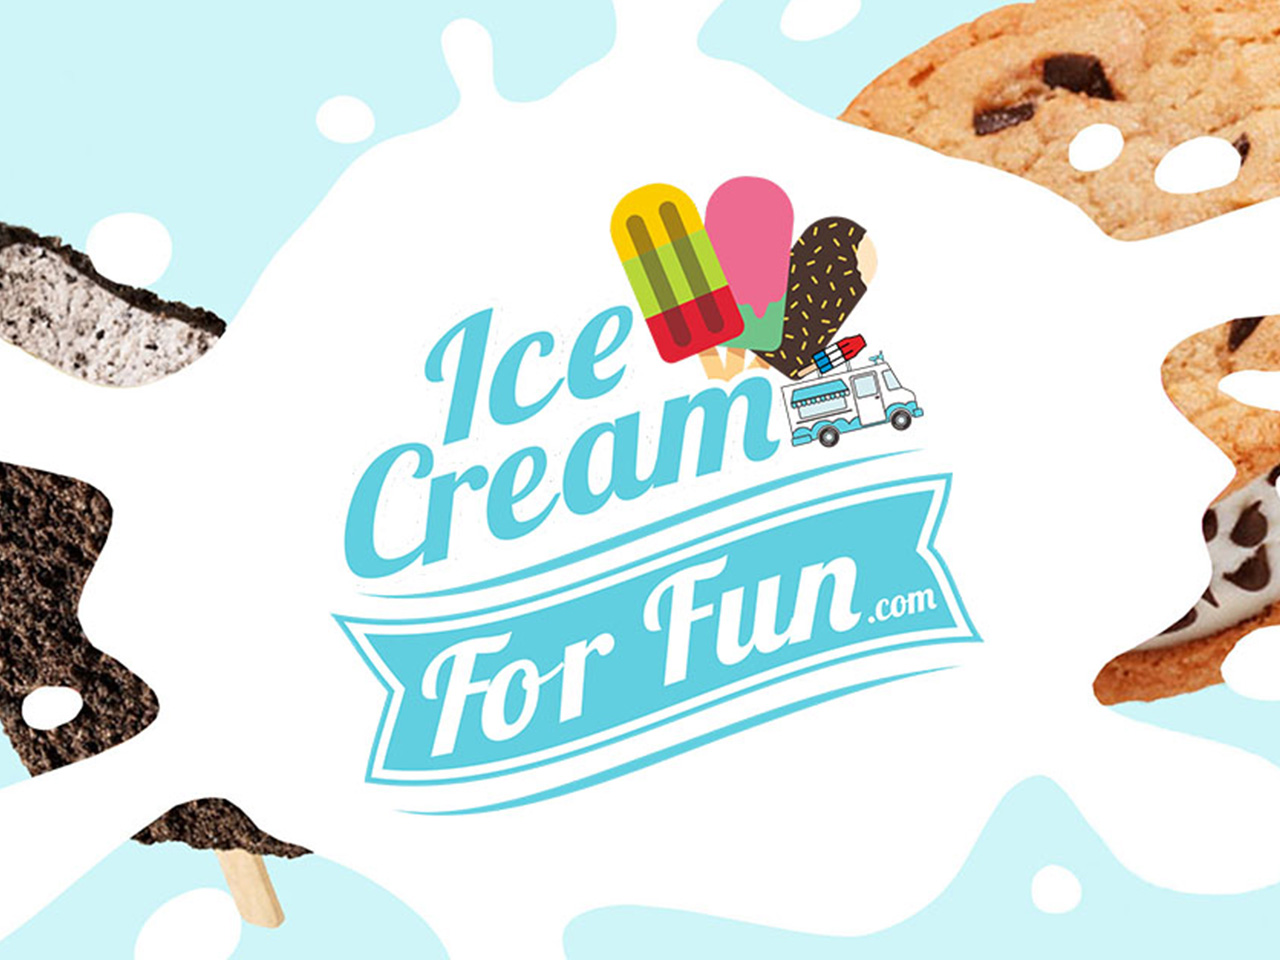 Ice cream for fun truck - new york - party - events - photo gallery logo